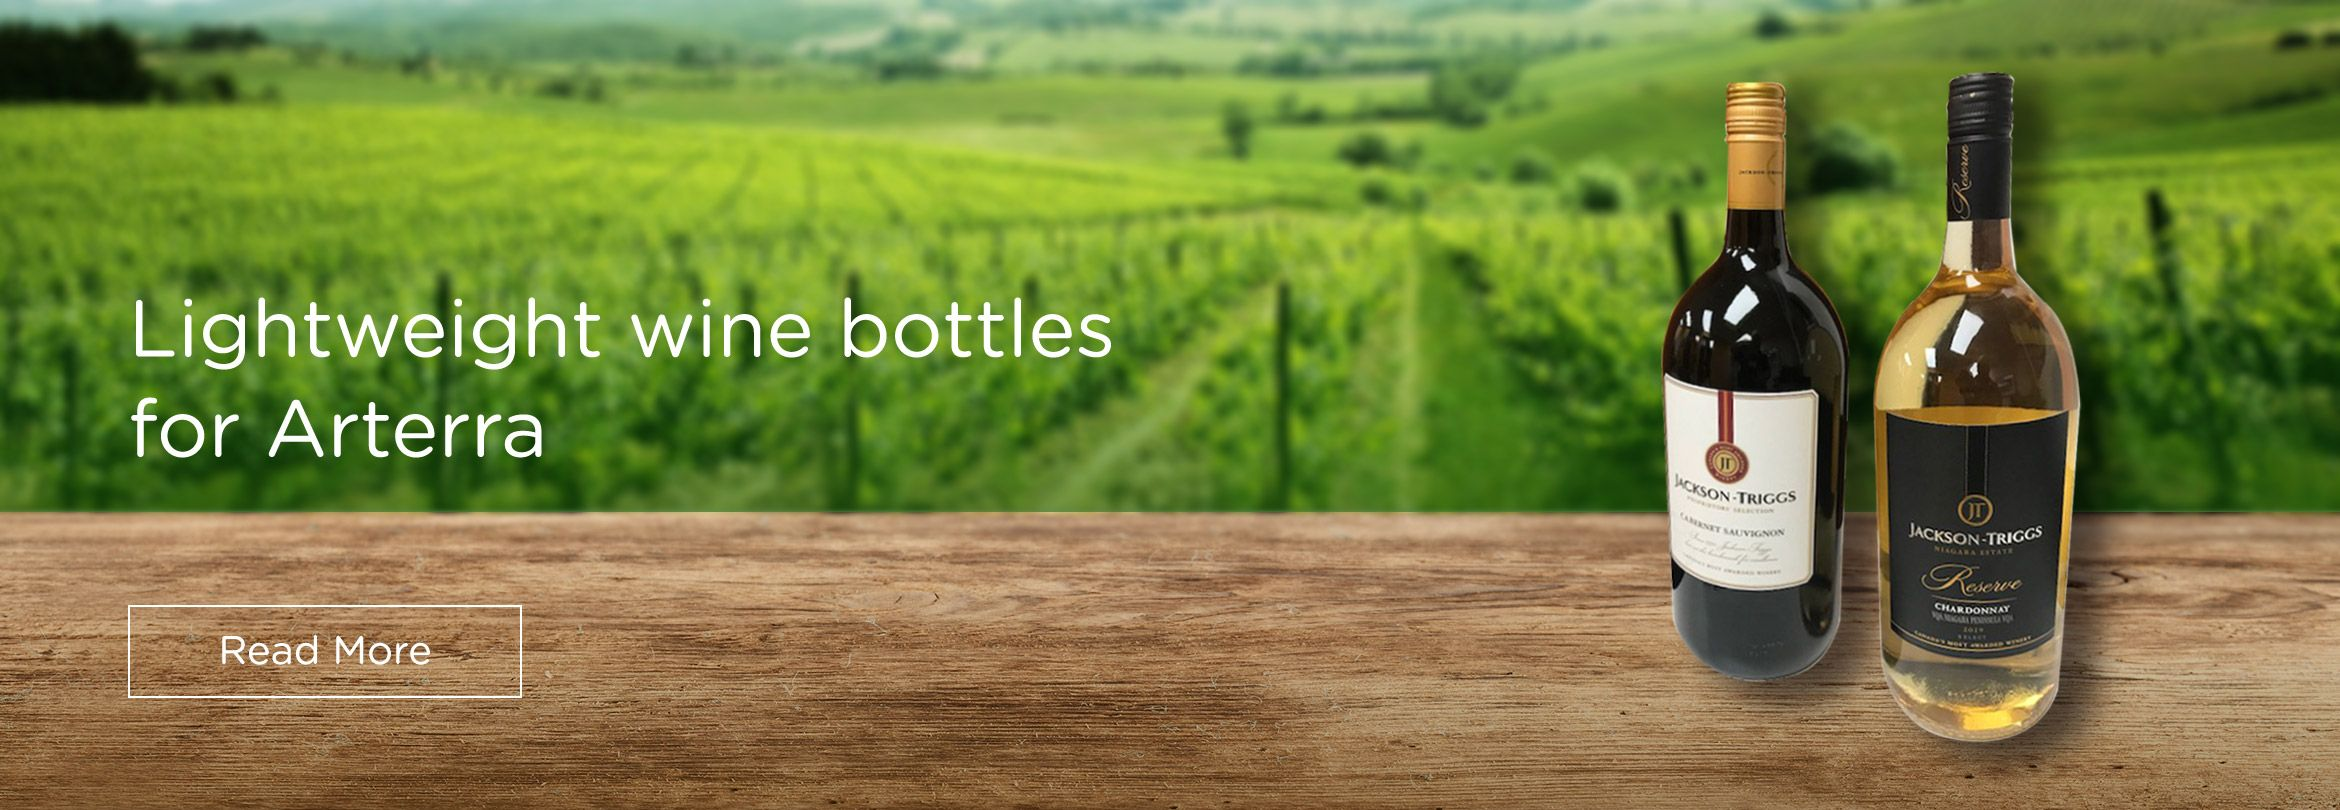 Lightweight wine bottles for Arterra